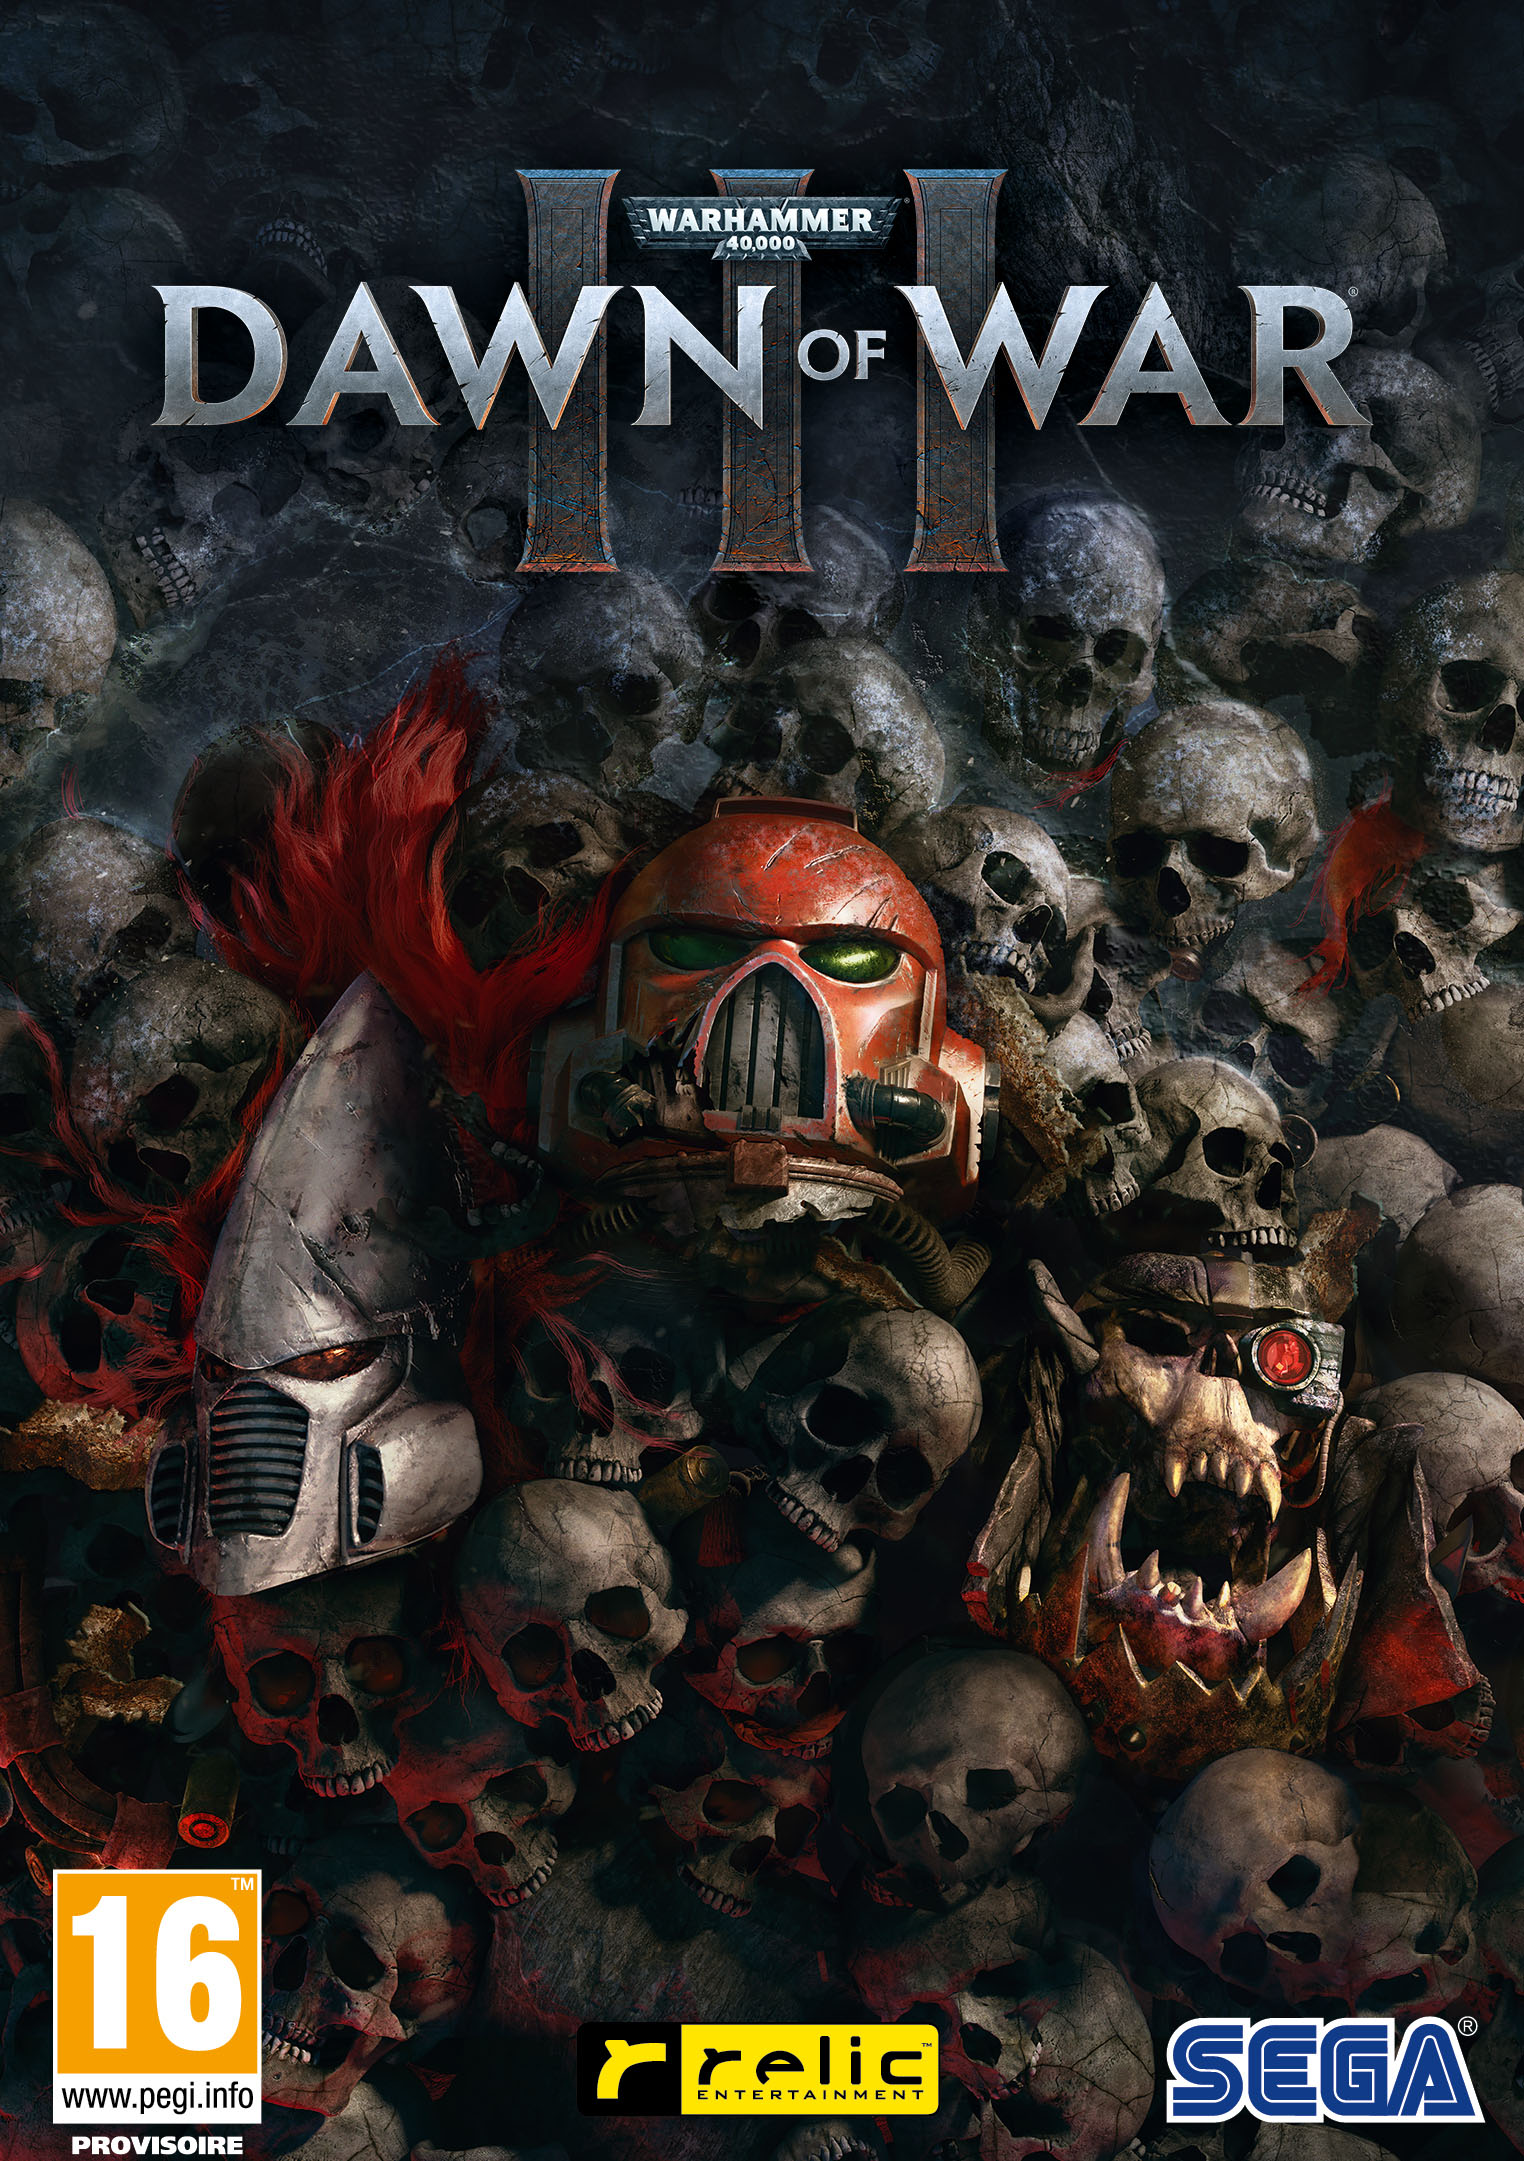 [DOW3] Dawn of war III - Page 3 1462285502-2515-artwork